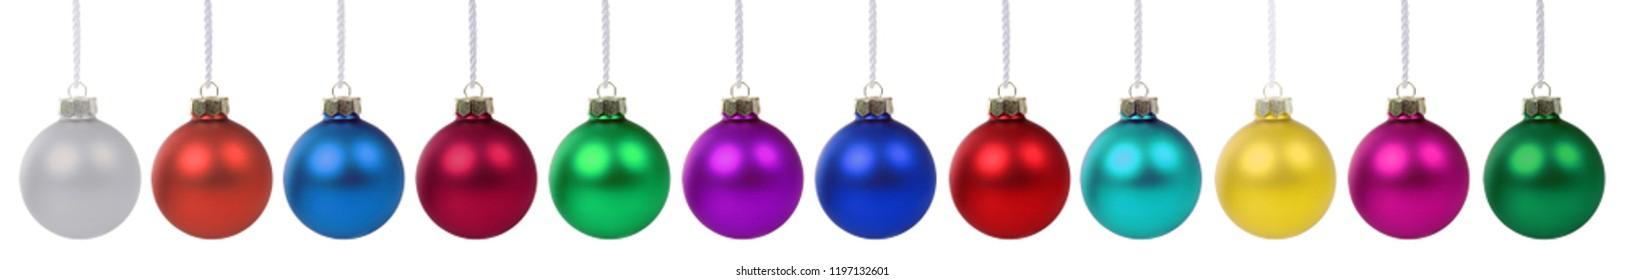 Christmas balls baubles banner colors decoration in a row isolated on a white background